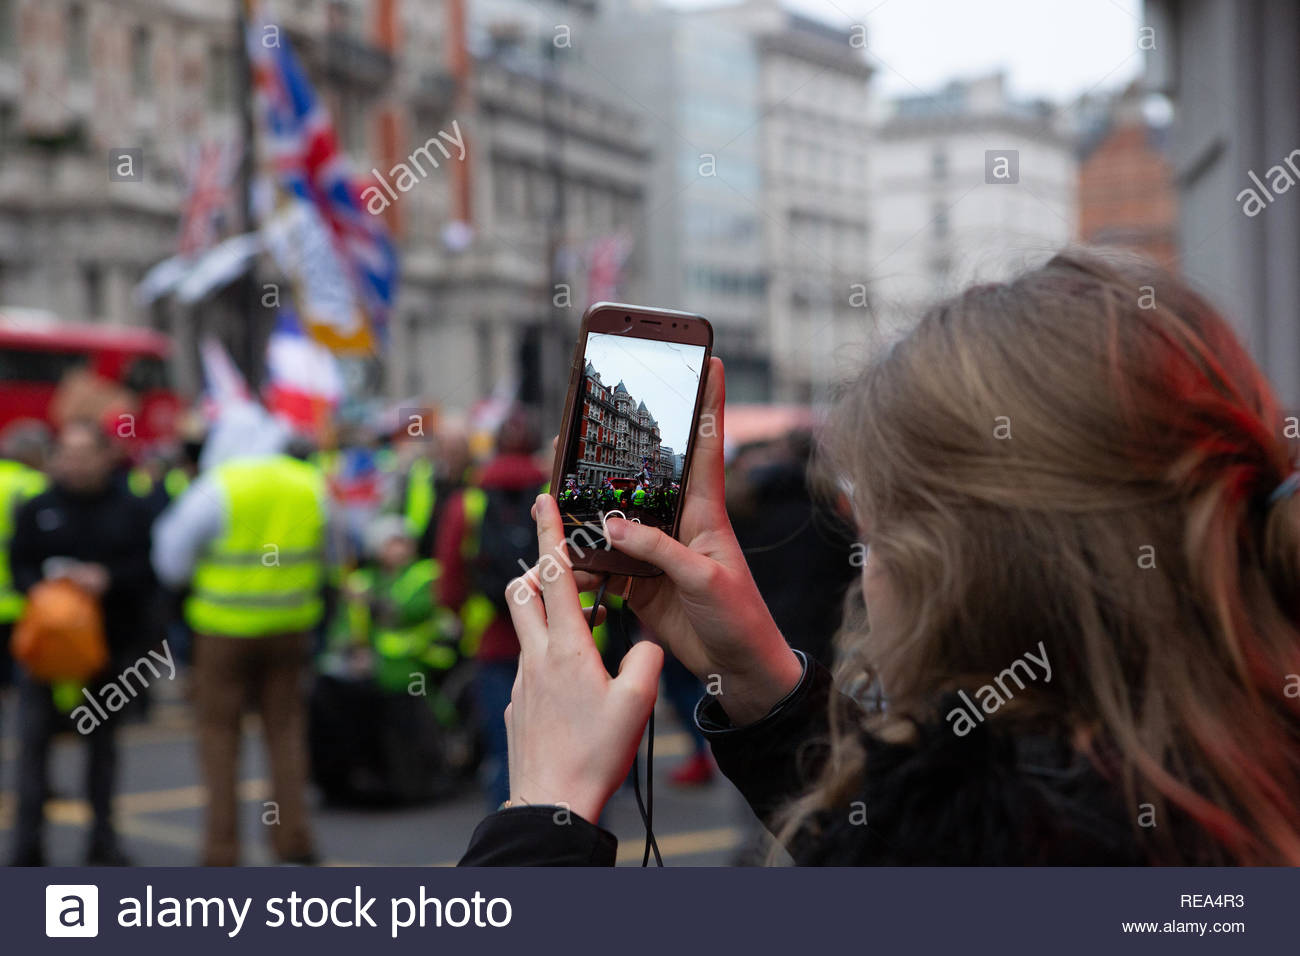 London, UK. 19 January 2019. Woman films Yellow Vest protest on her mobile phone. Graeme Barbour/Alamy - Stock Image